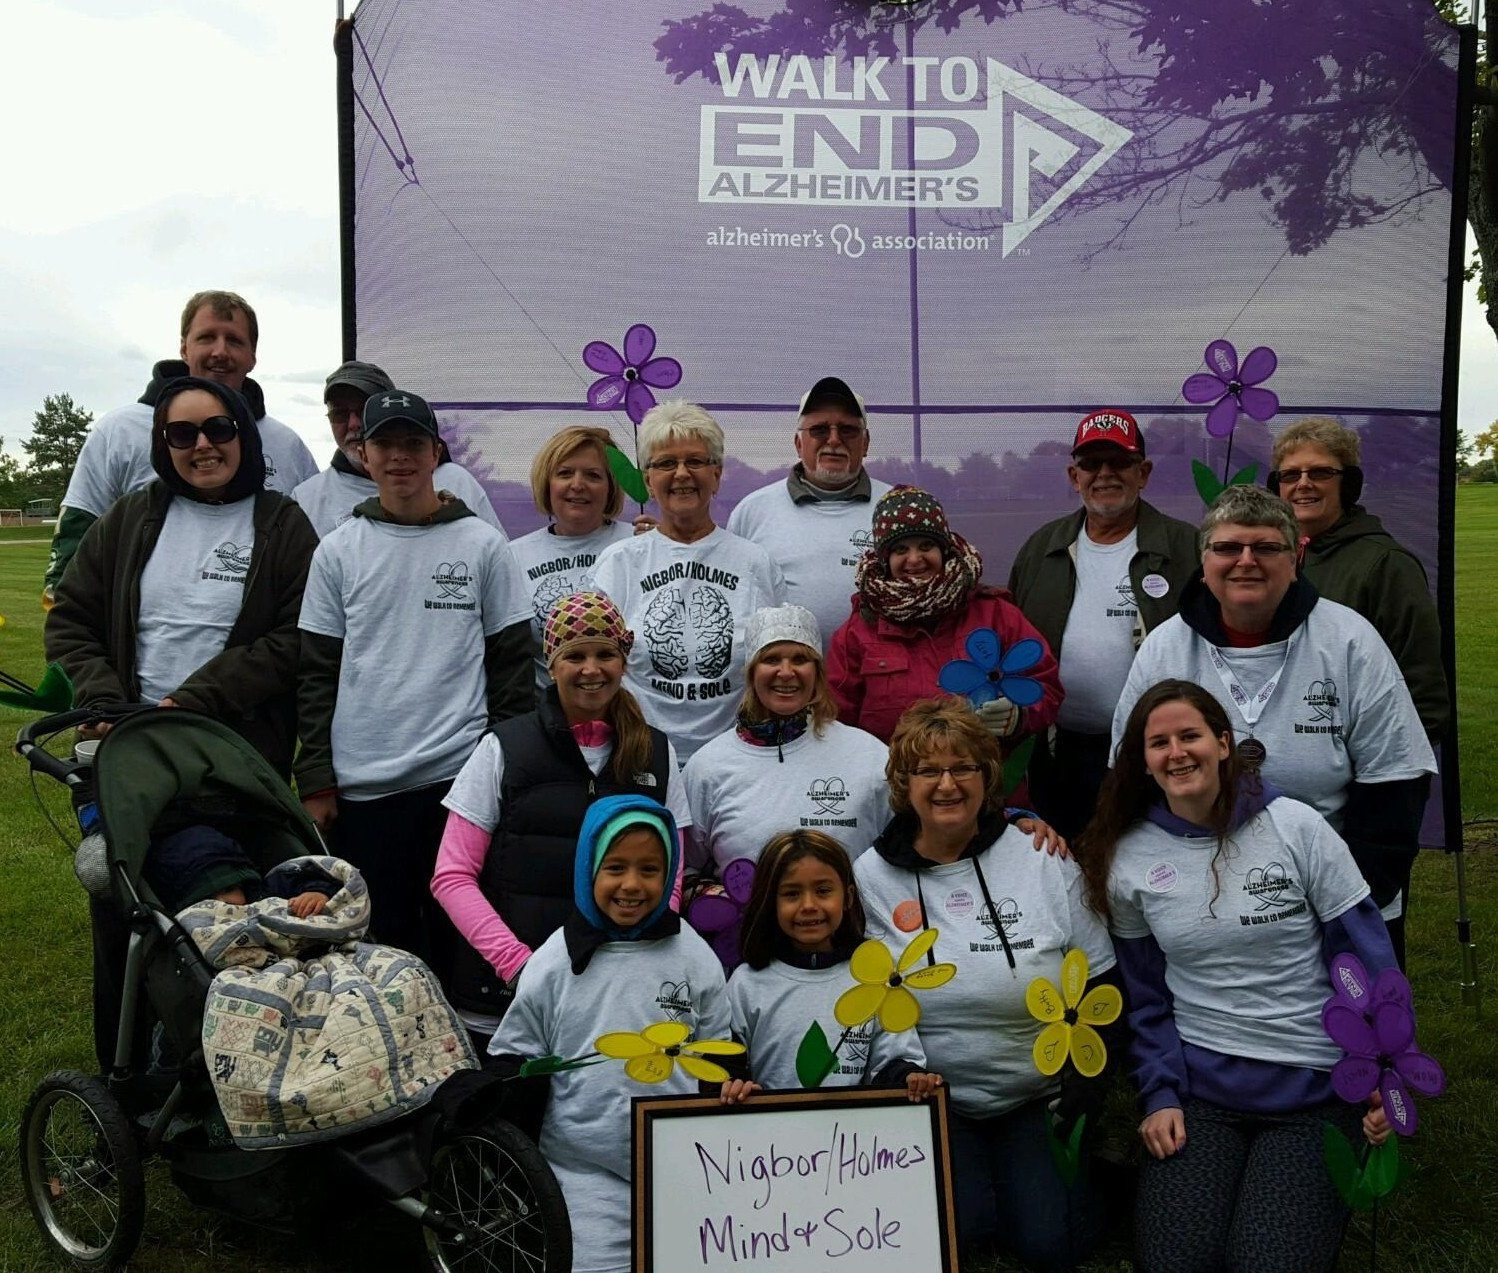 Nigbor/Holmes Mind & Sole-- Walk to End Alzheimers